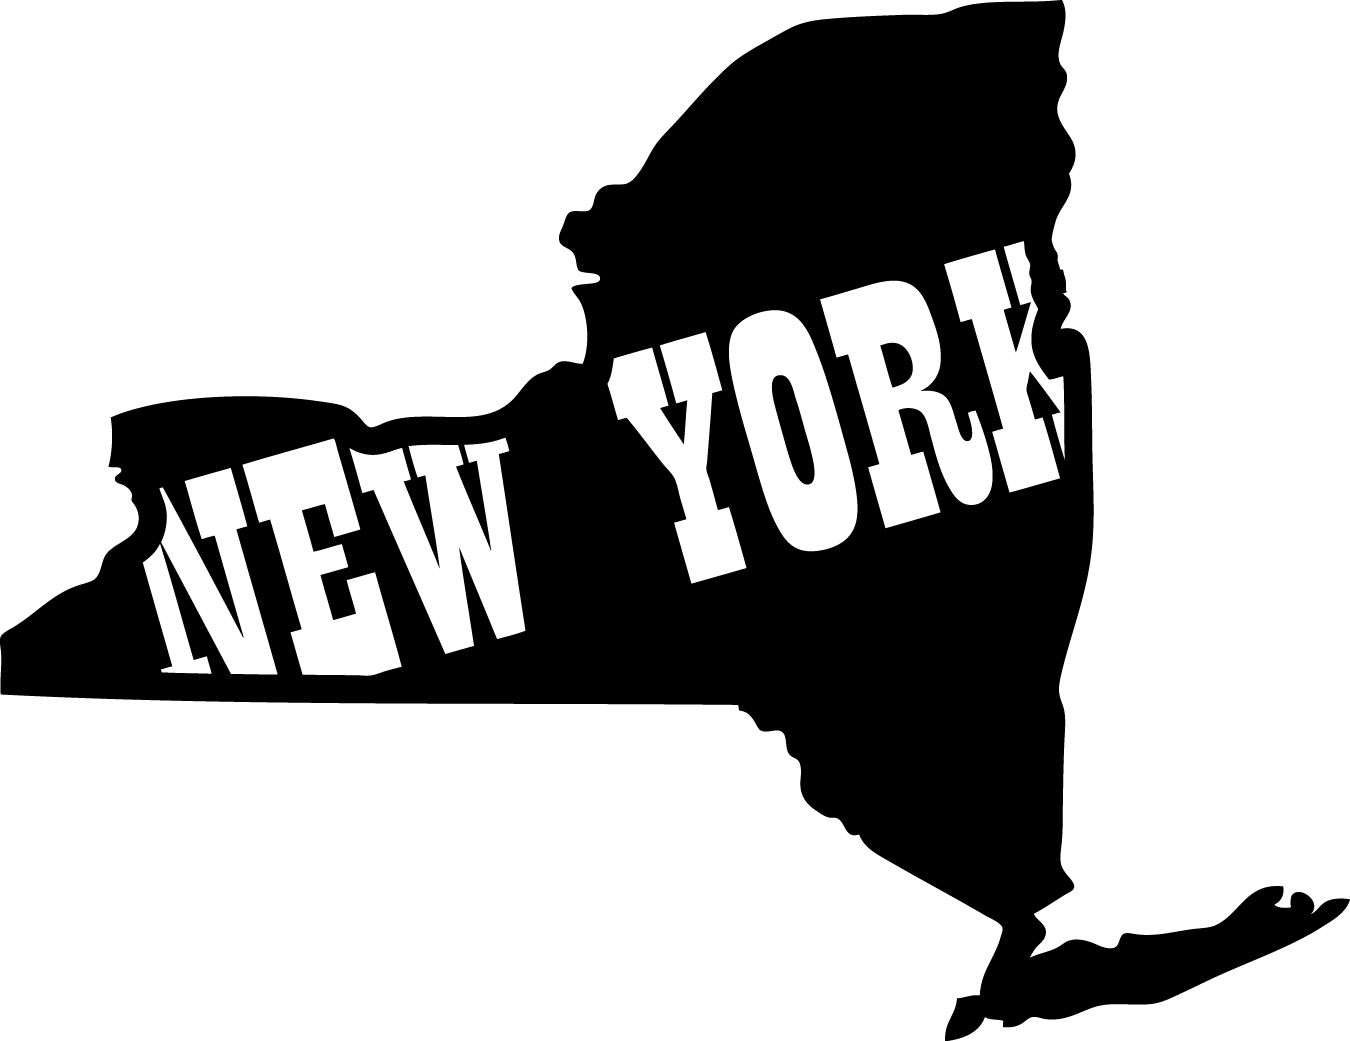 Free New York State Outline Png, Download Free Clip Art.